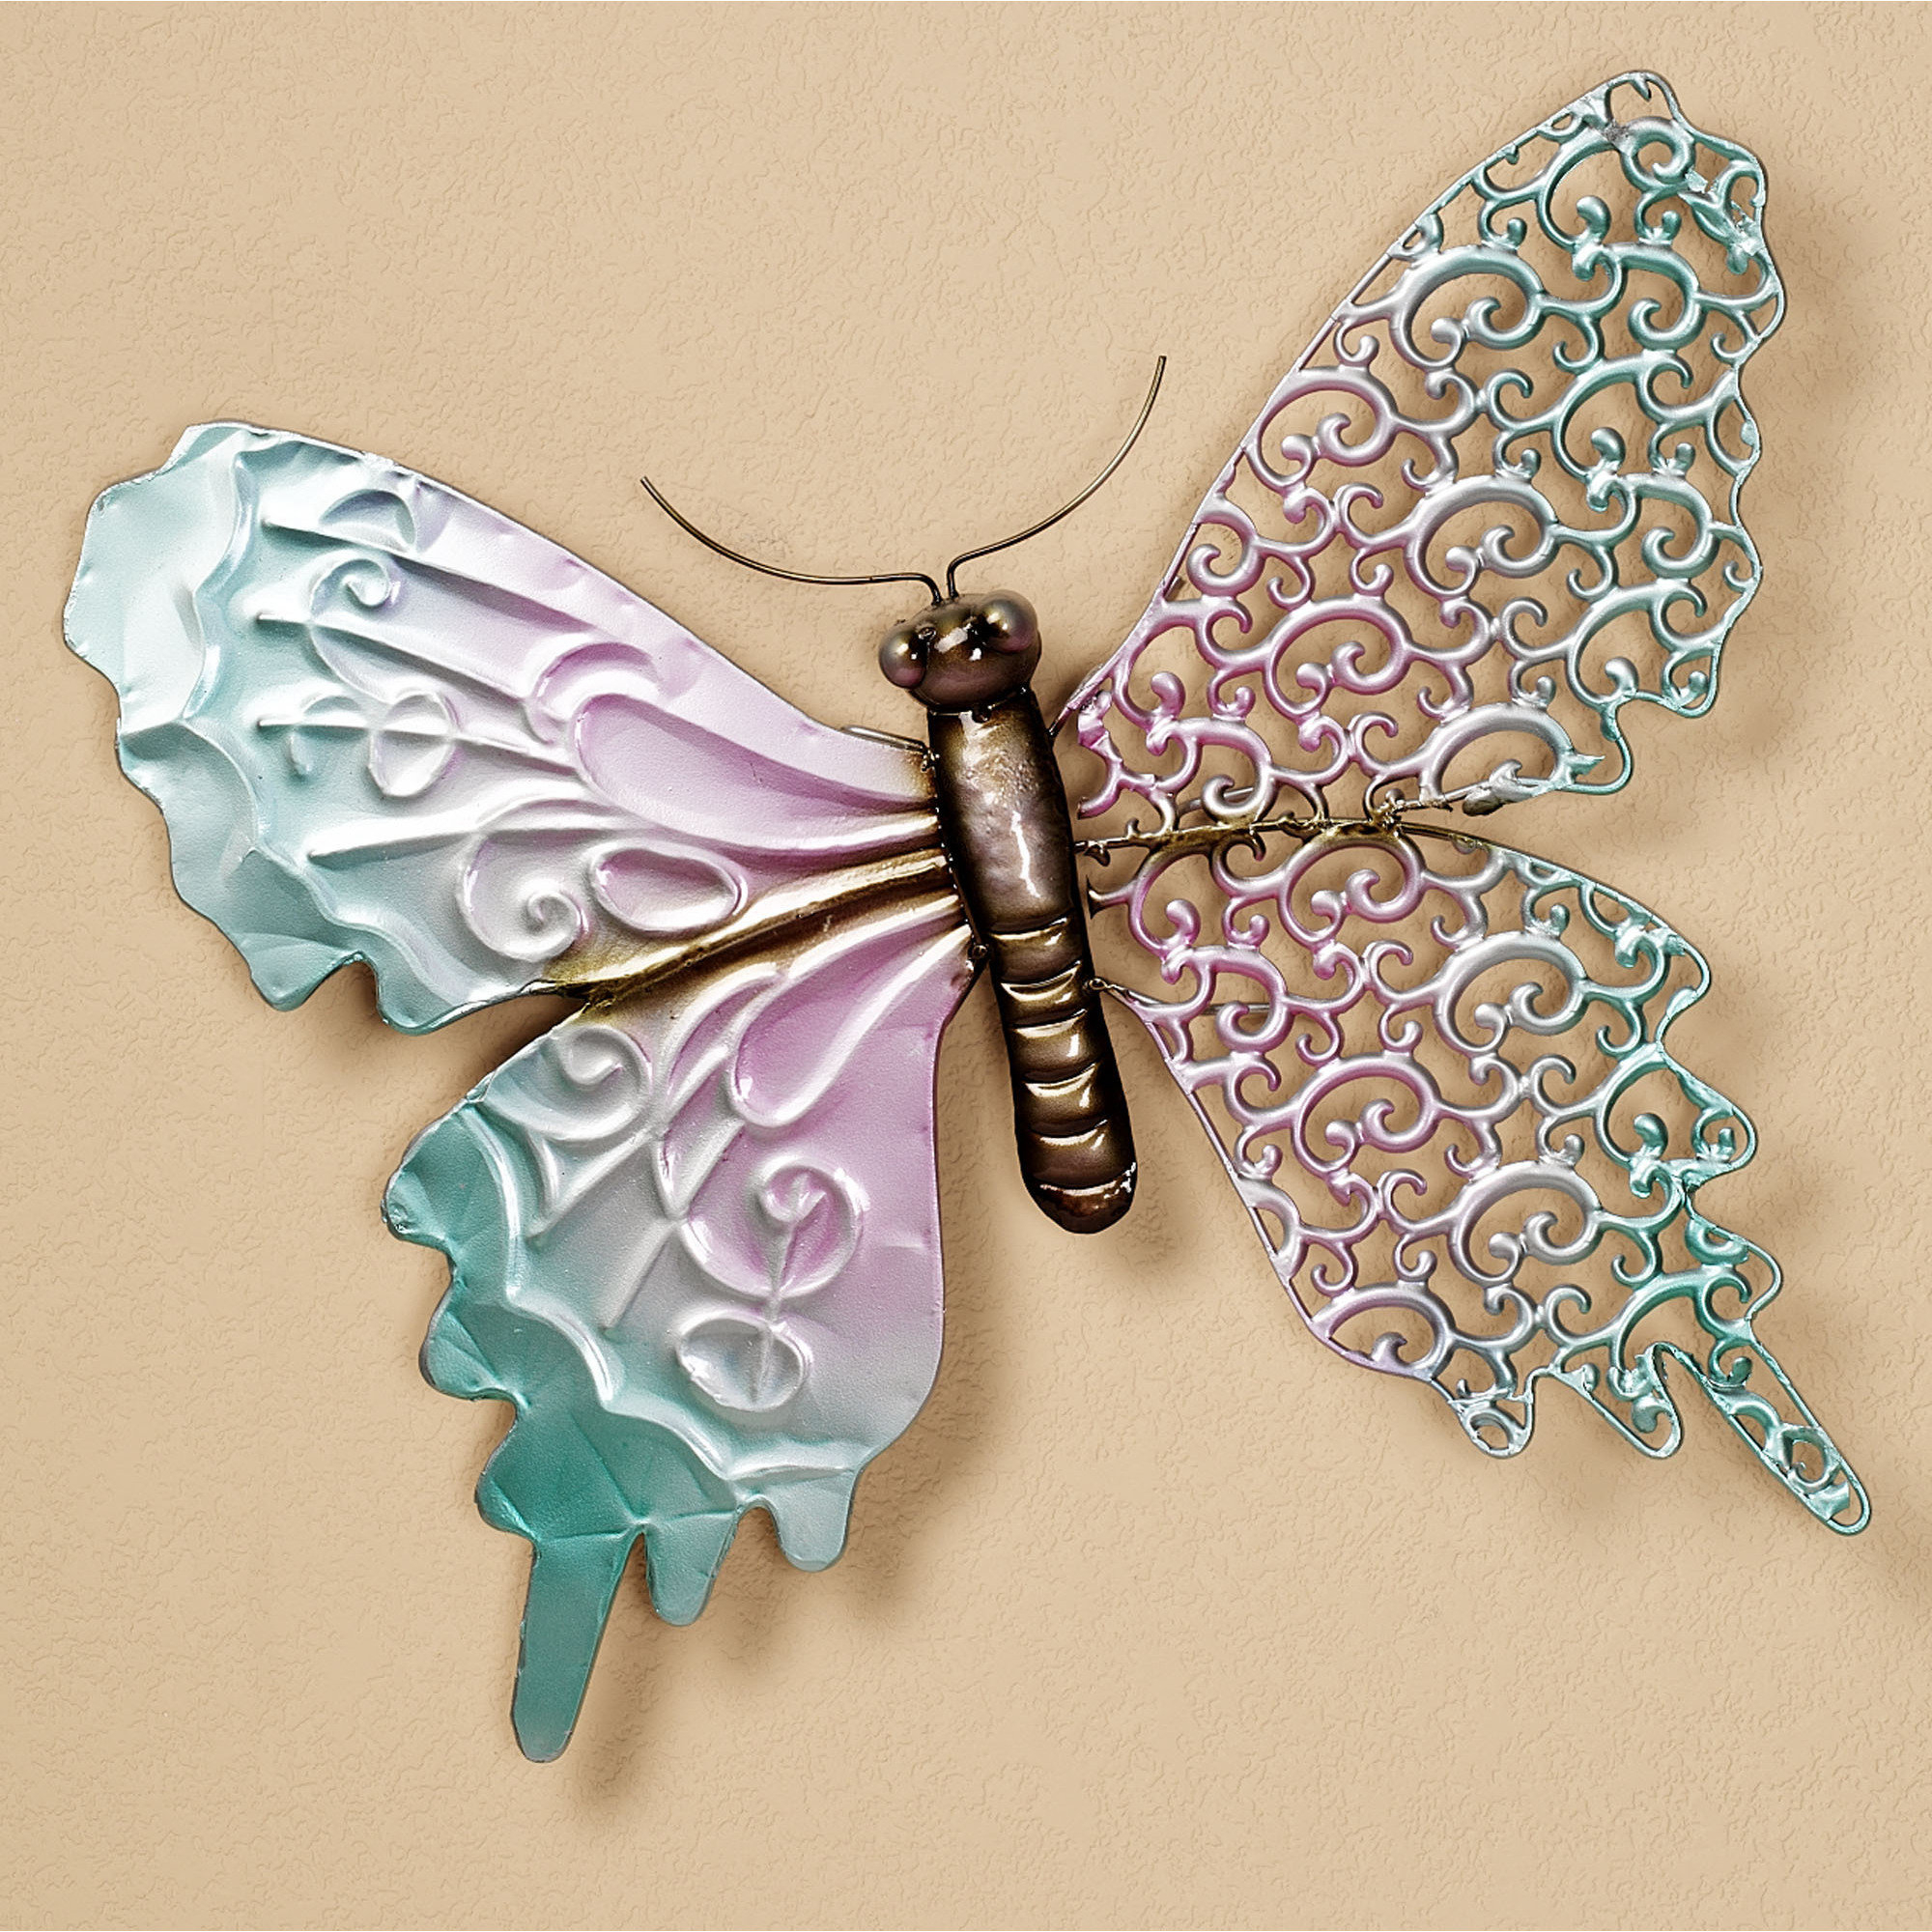 Ila Metal Butterfly Wall Decor Regarding Most Recent 25 Magnanimous Butterfly Wall Decor That Gives You Pleasure (Gallery 15 of 20)